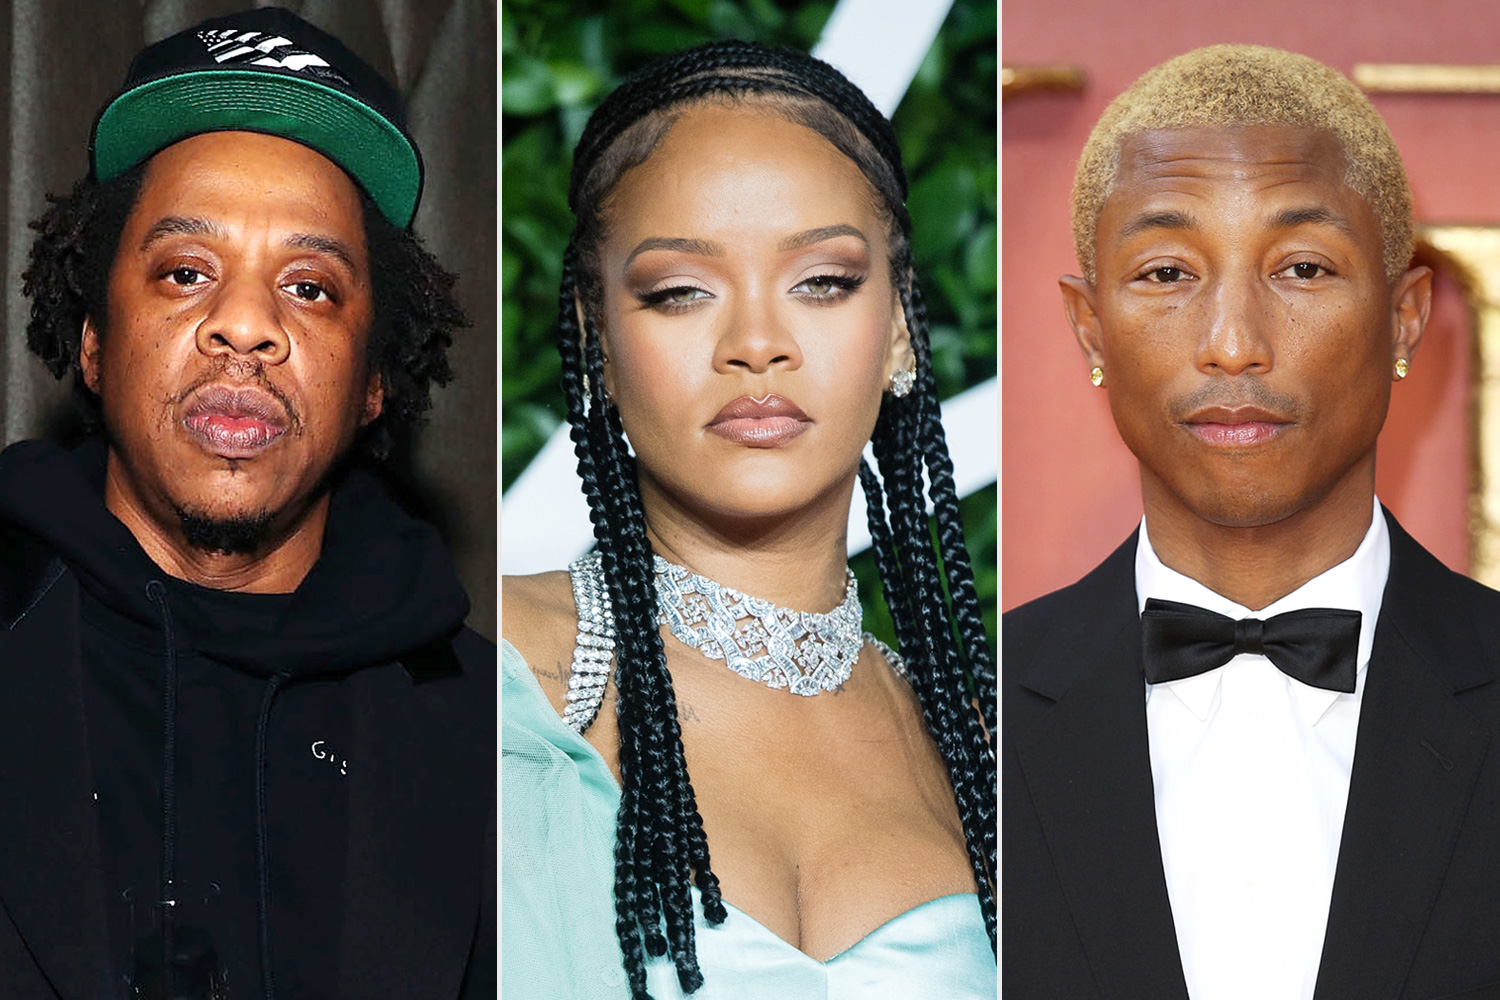 Jay-Z, Rihanna Pharrell Williams demand justice for a black college student shot dead by a white cop